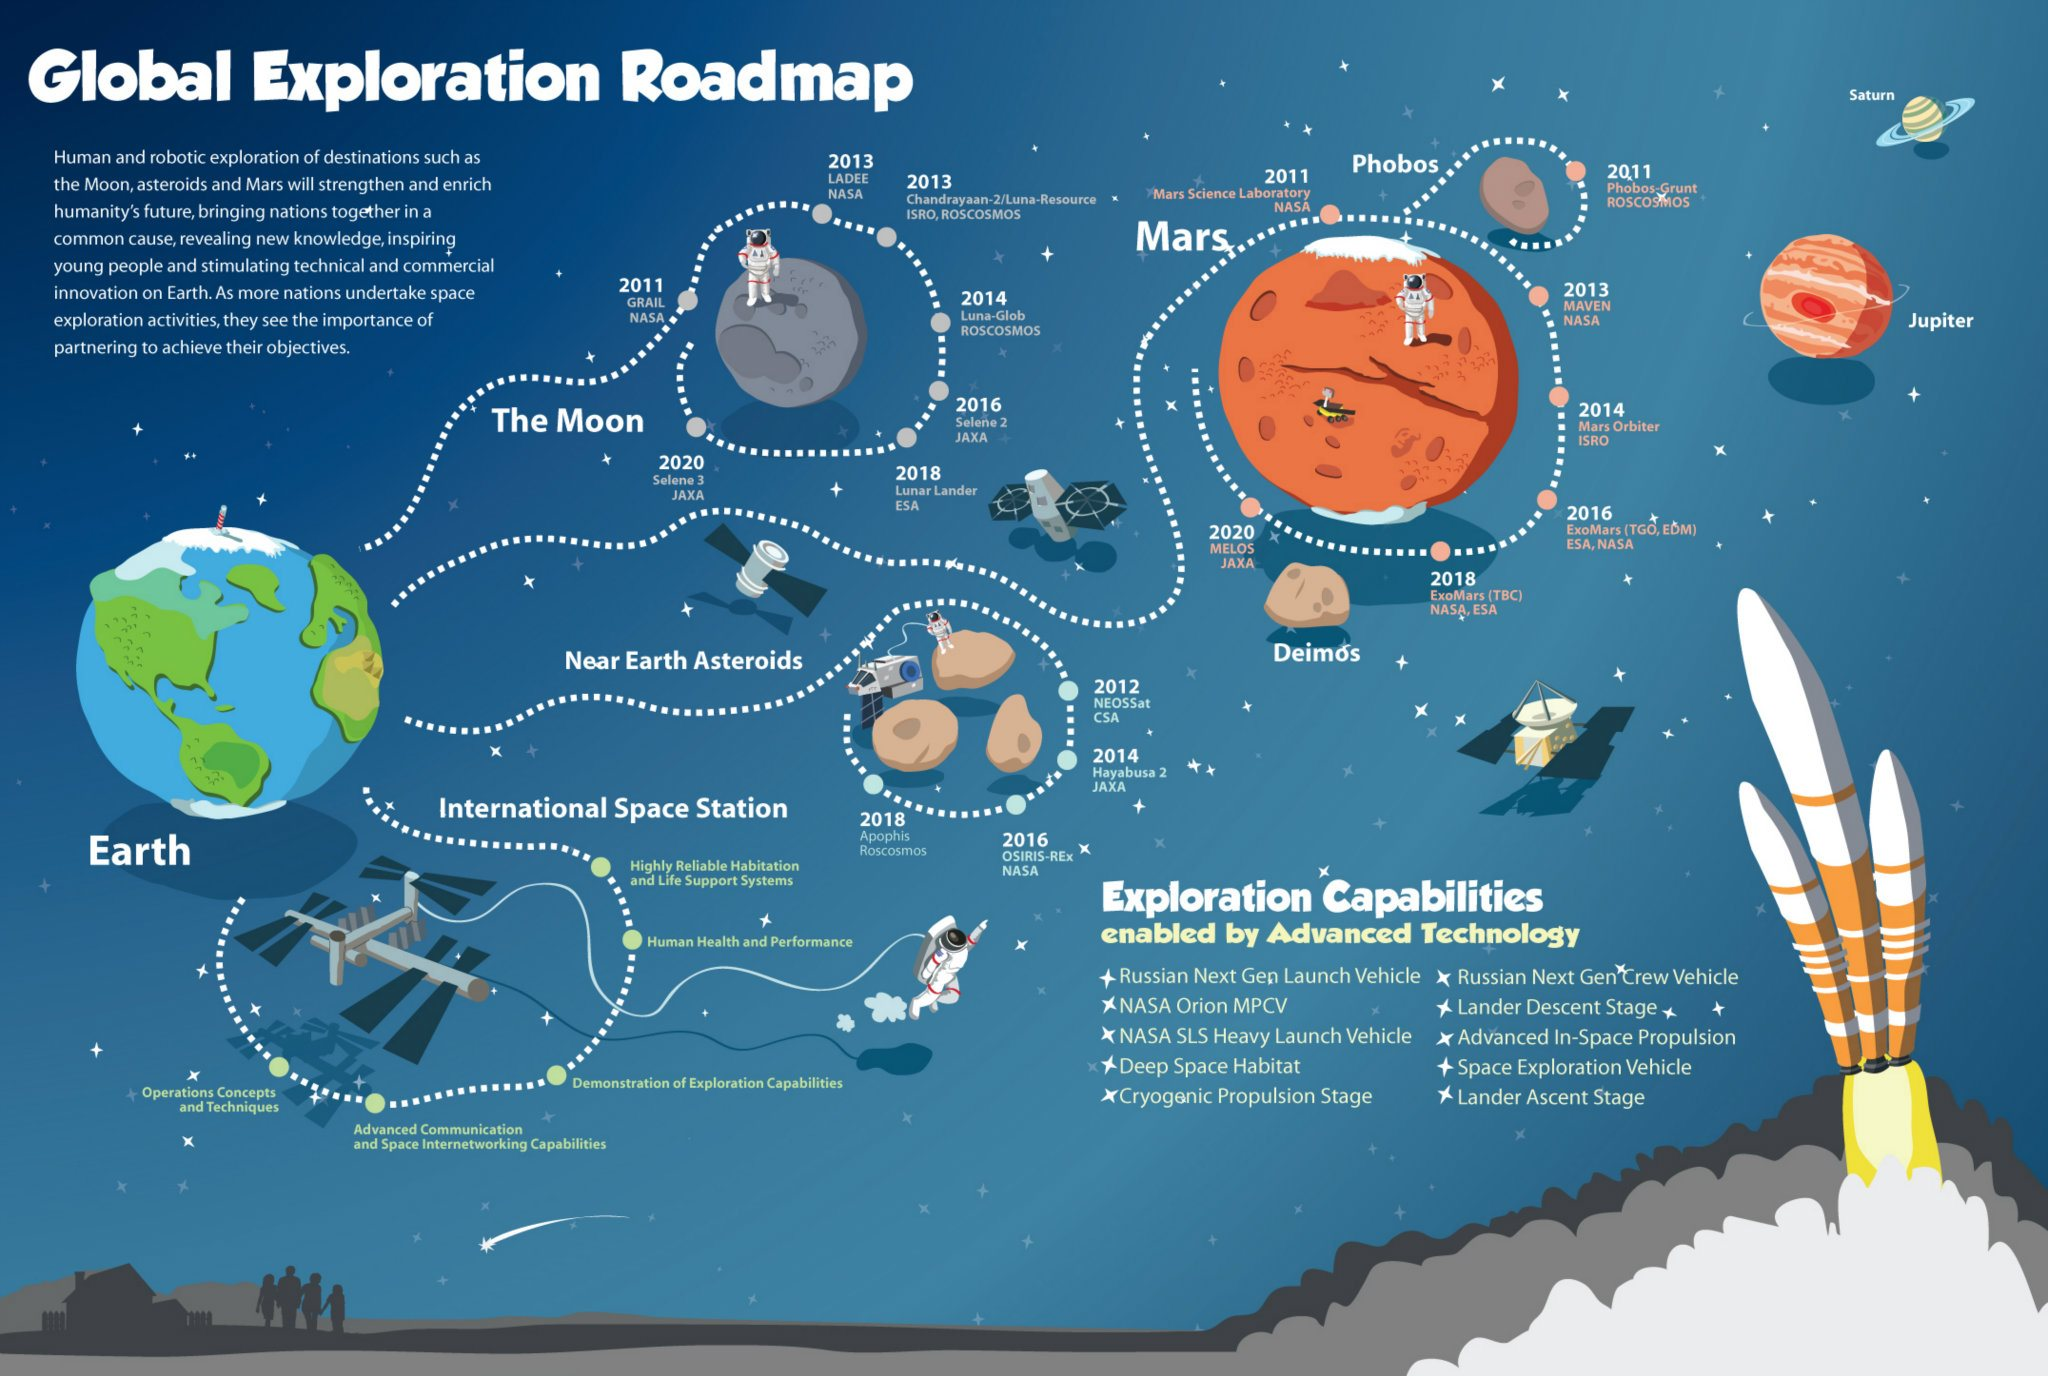 Global_Exploration_Roadmap.jpg